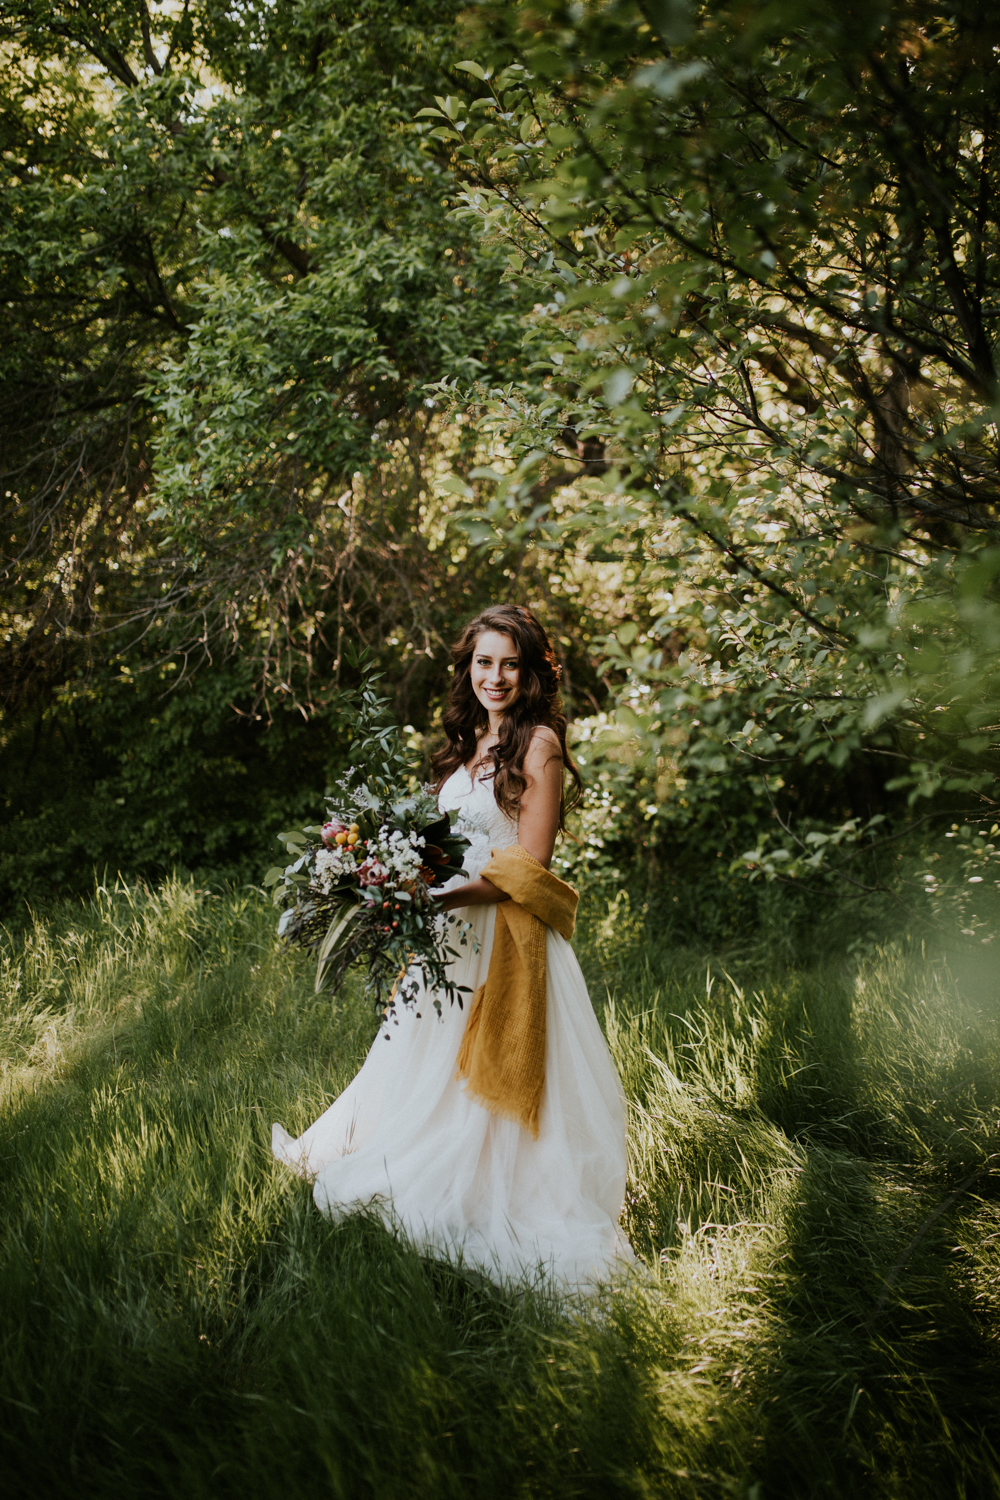 styled-colourful-wedding-photoshoot-bride-bhldn-floral-design-alberta-portrait-44.jpg